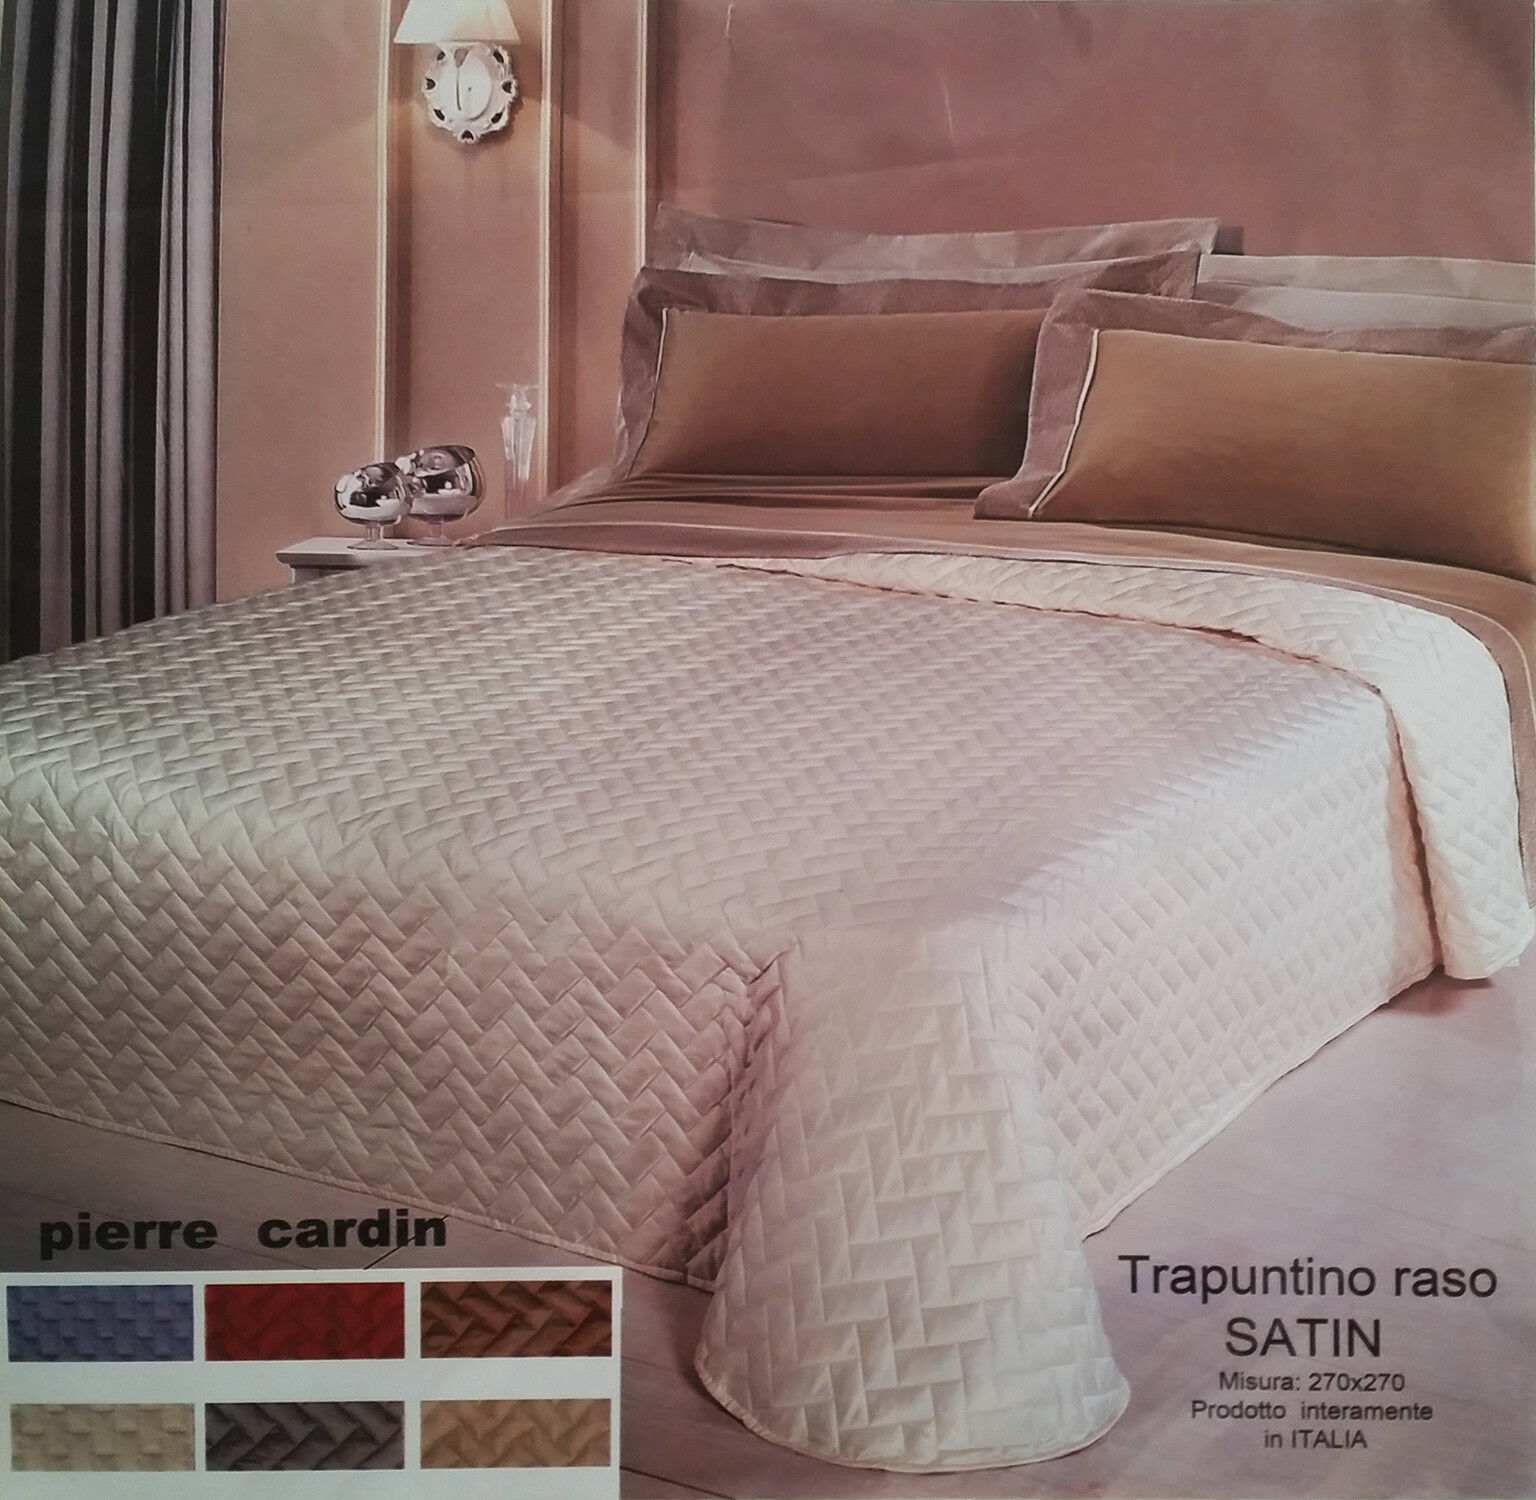 TRAPUNTINO MATRIMONIALE PIERRE CARDIN MOD. SATIN 270x270 MADE IN ITALY